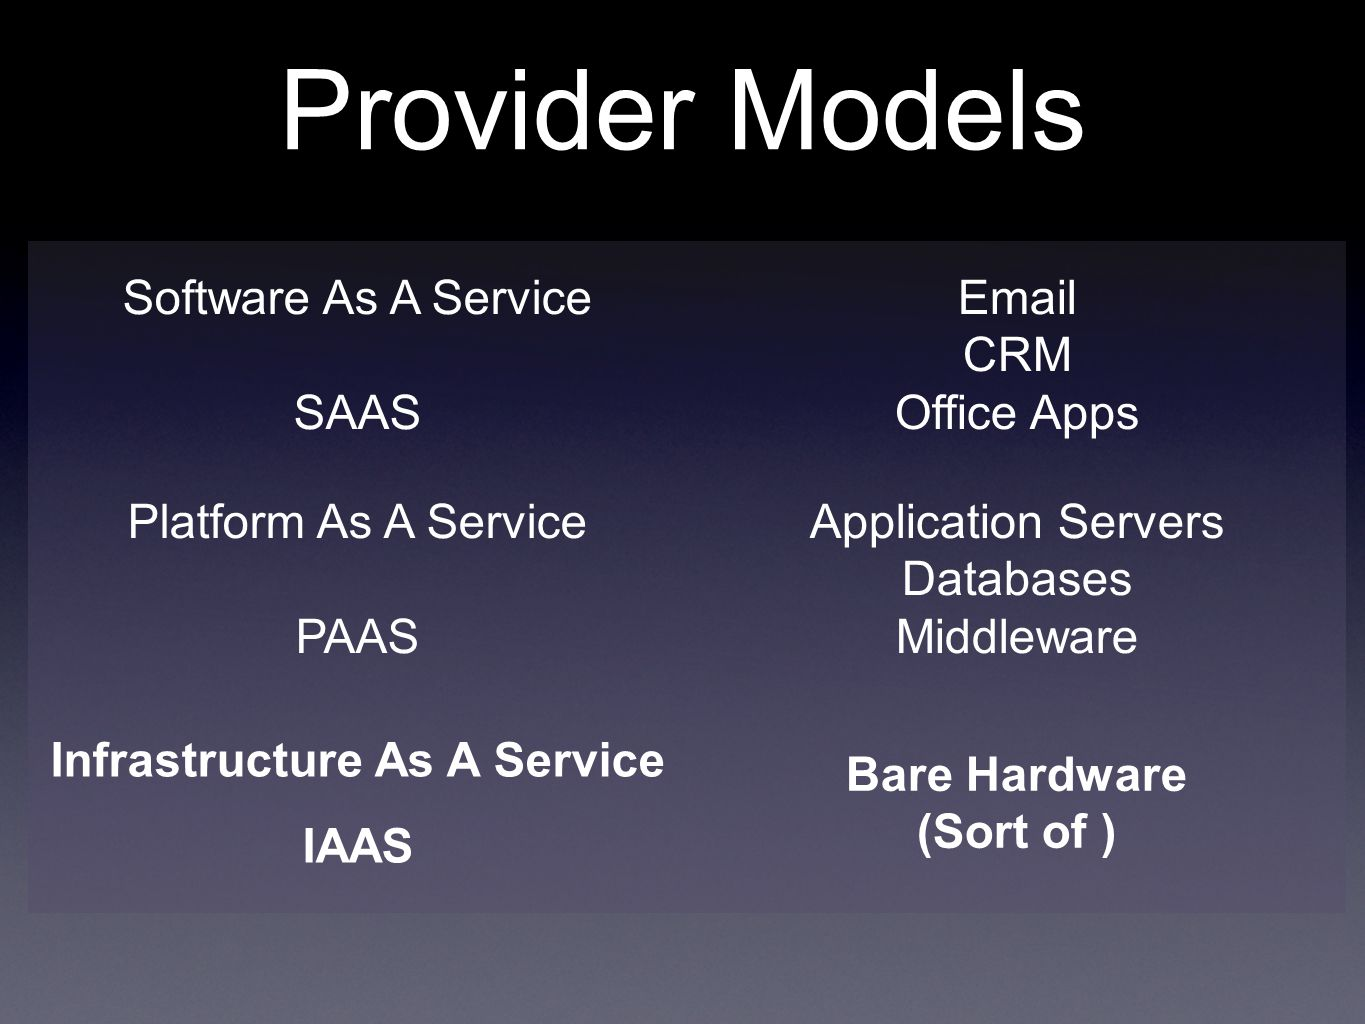 Provider Models Software As A Service SAAS  CRM Office Apps Platform As A Service PAAS Application Servers Databases Middleware Infrastructure As A Service IAAS Bare Hardware (Sort of )